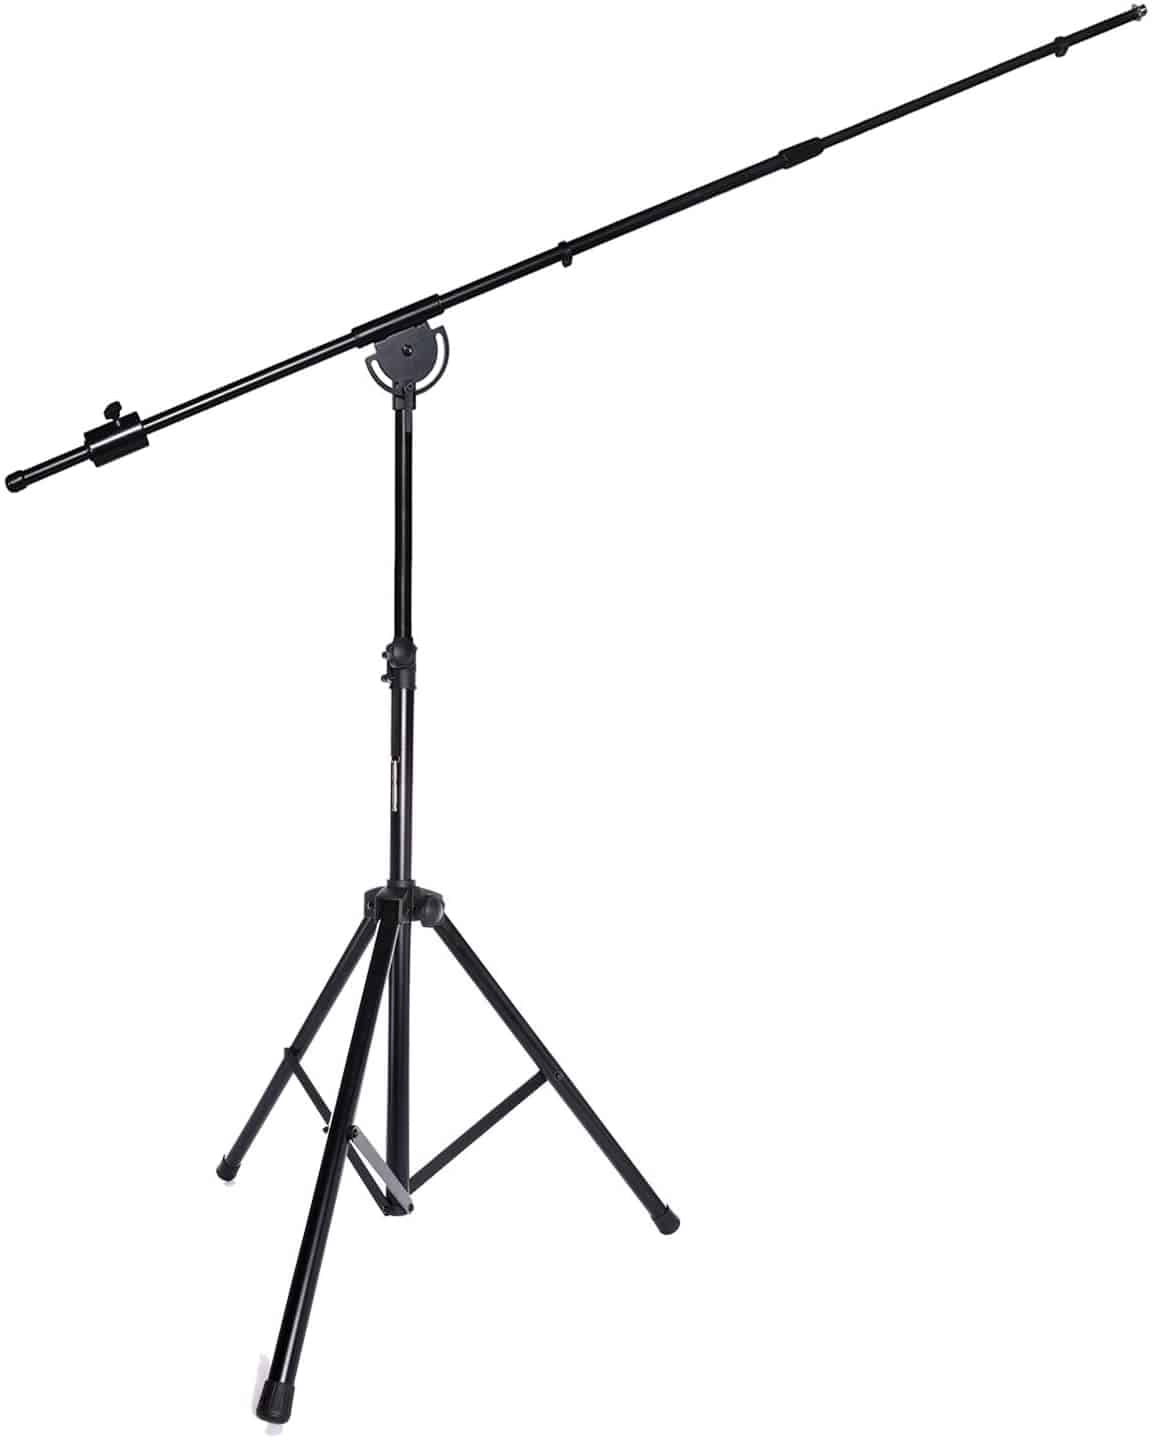 Best choir boom stand with extra long arm: LyxPro SMT-1 Professional